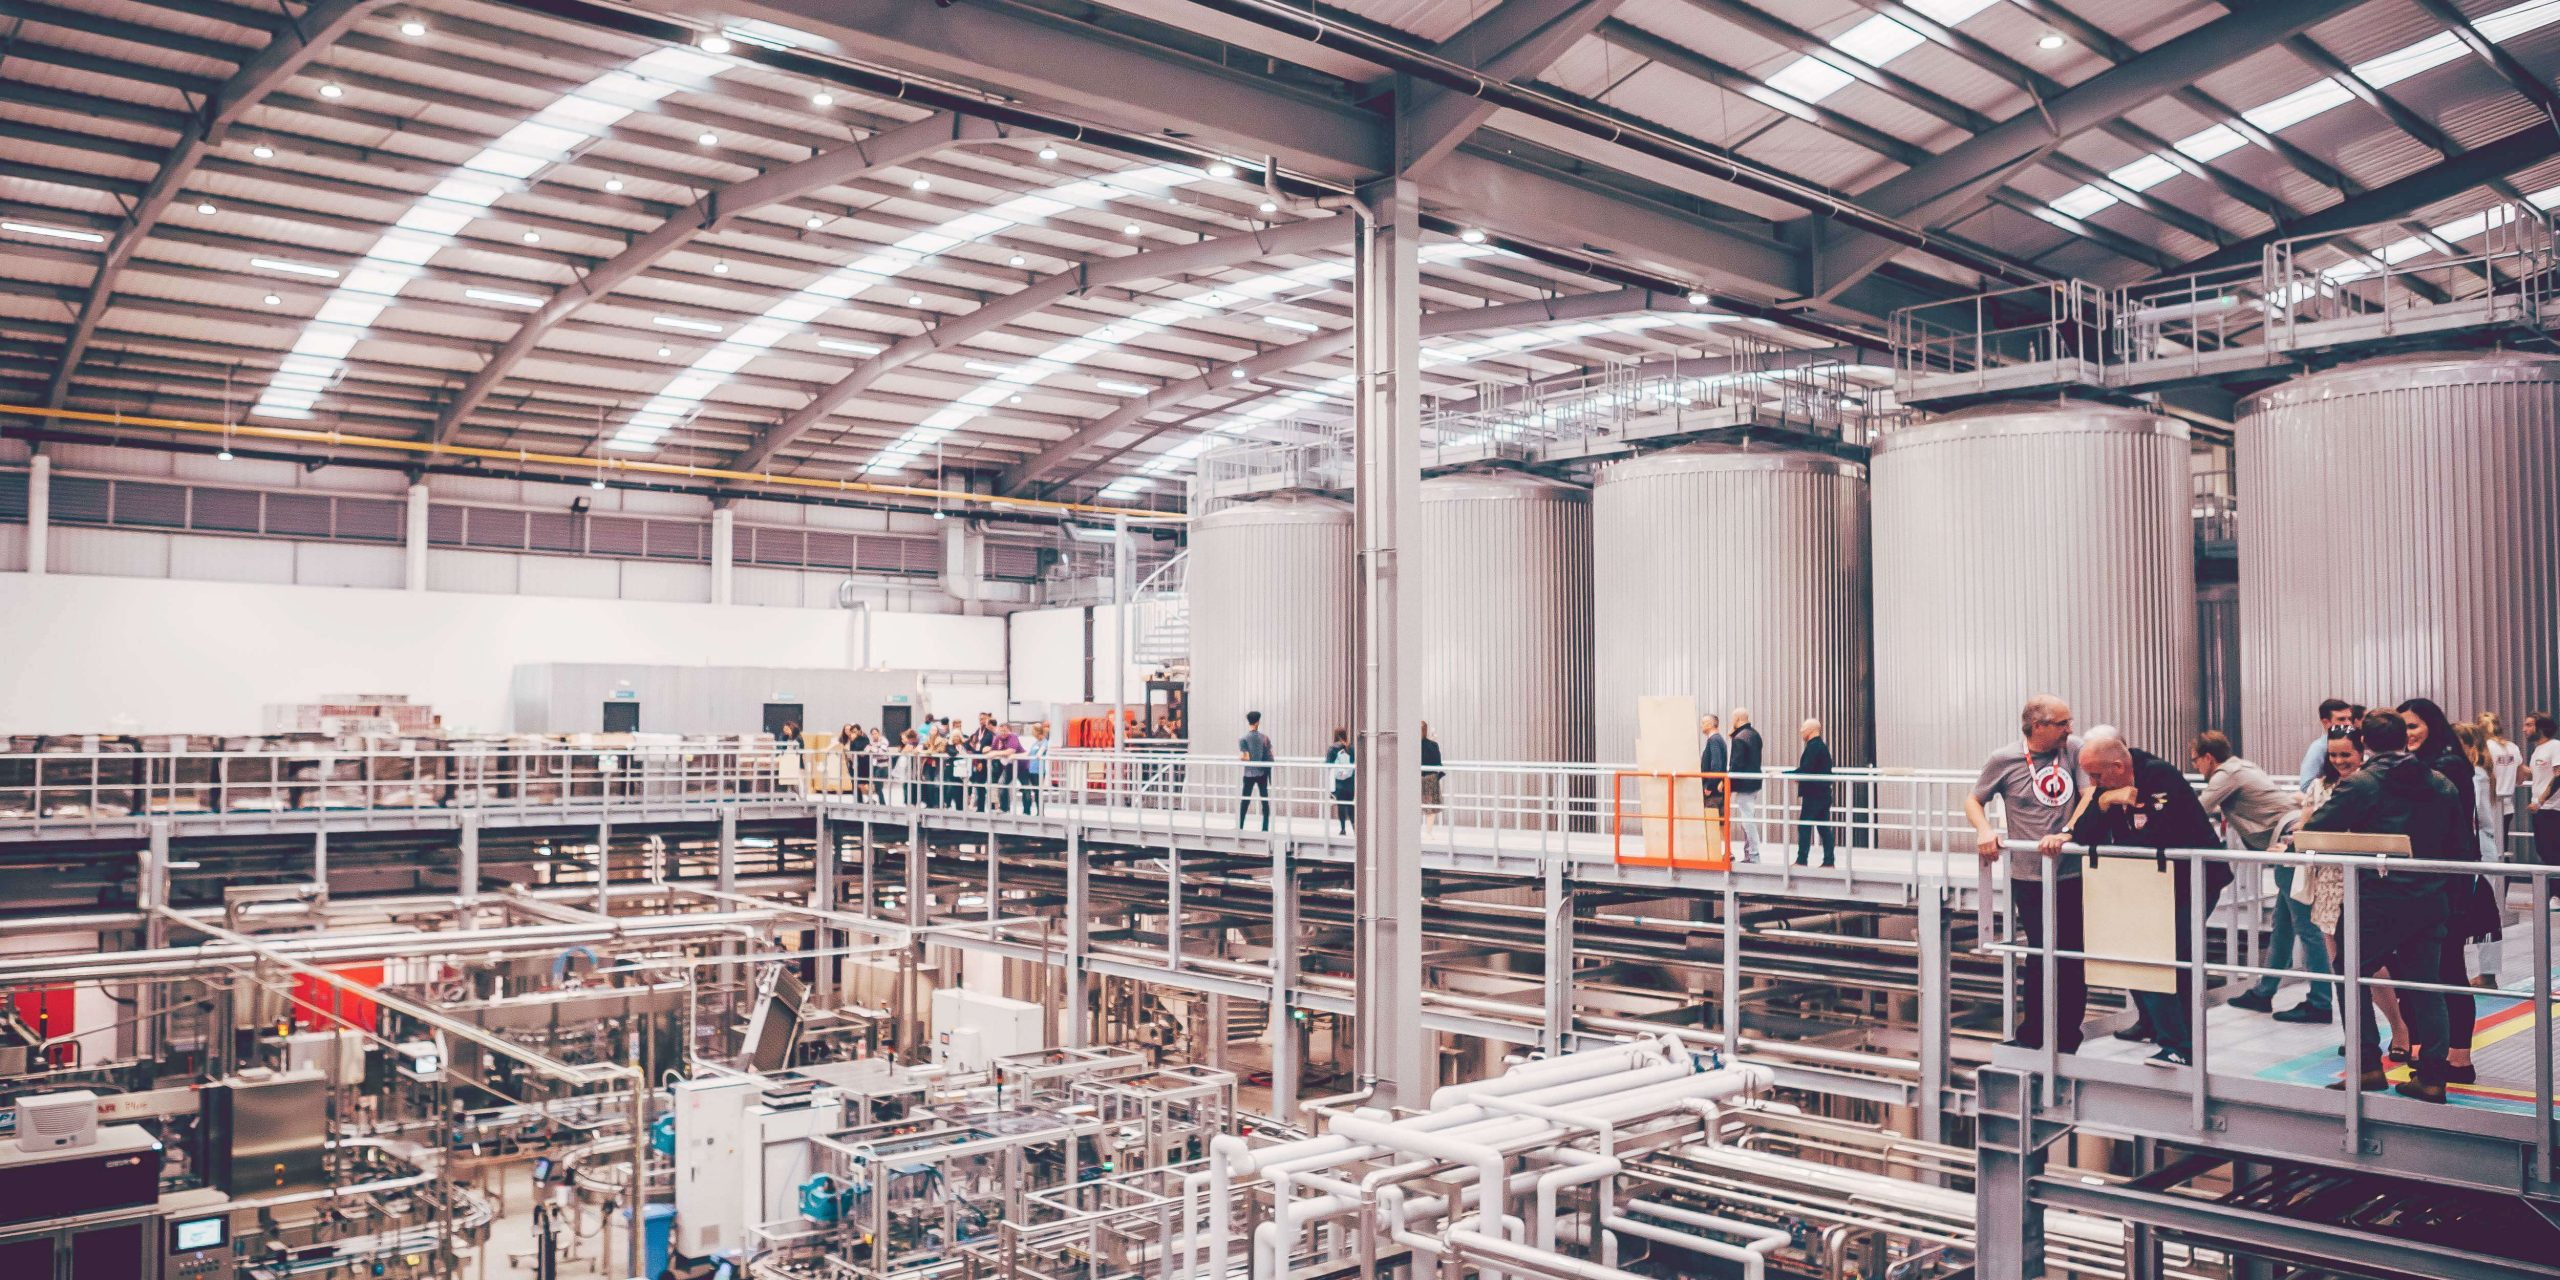 Inside the production facility at Camden Town Brewery in Enfield, England